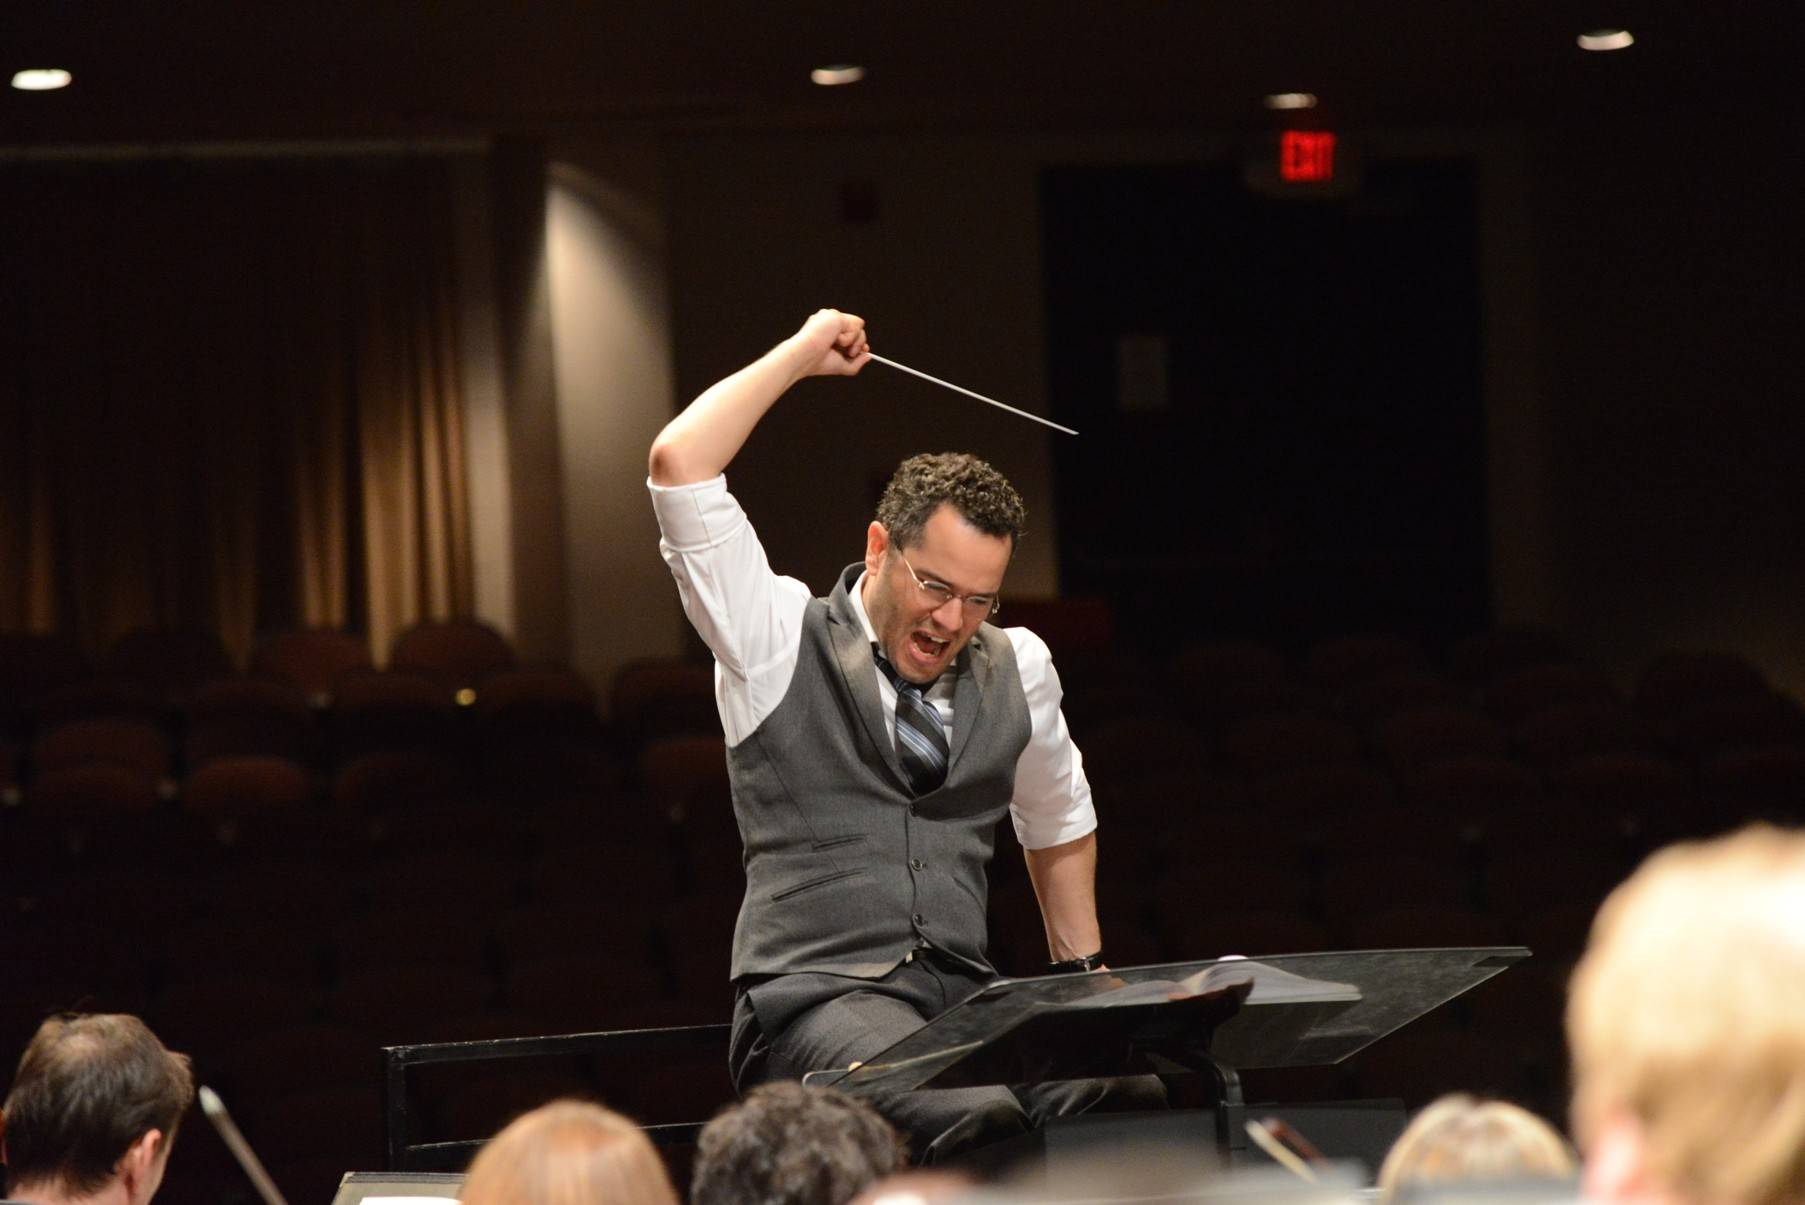 Maestro Andrew Grams conducts the Elgin Symphony Orchestra in its opening season concerts featuring works by Beethoven, Wagner and Weber at the Hemmens Cultural Center in Elgin on Saturday and Sunday, Sept. 13 and 14.